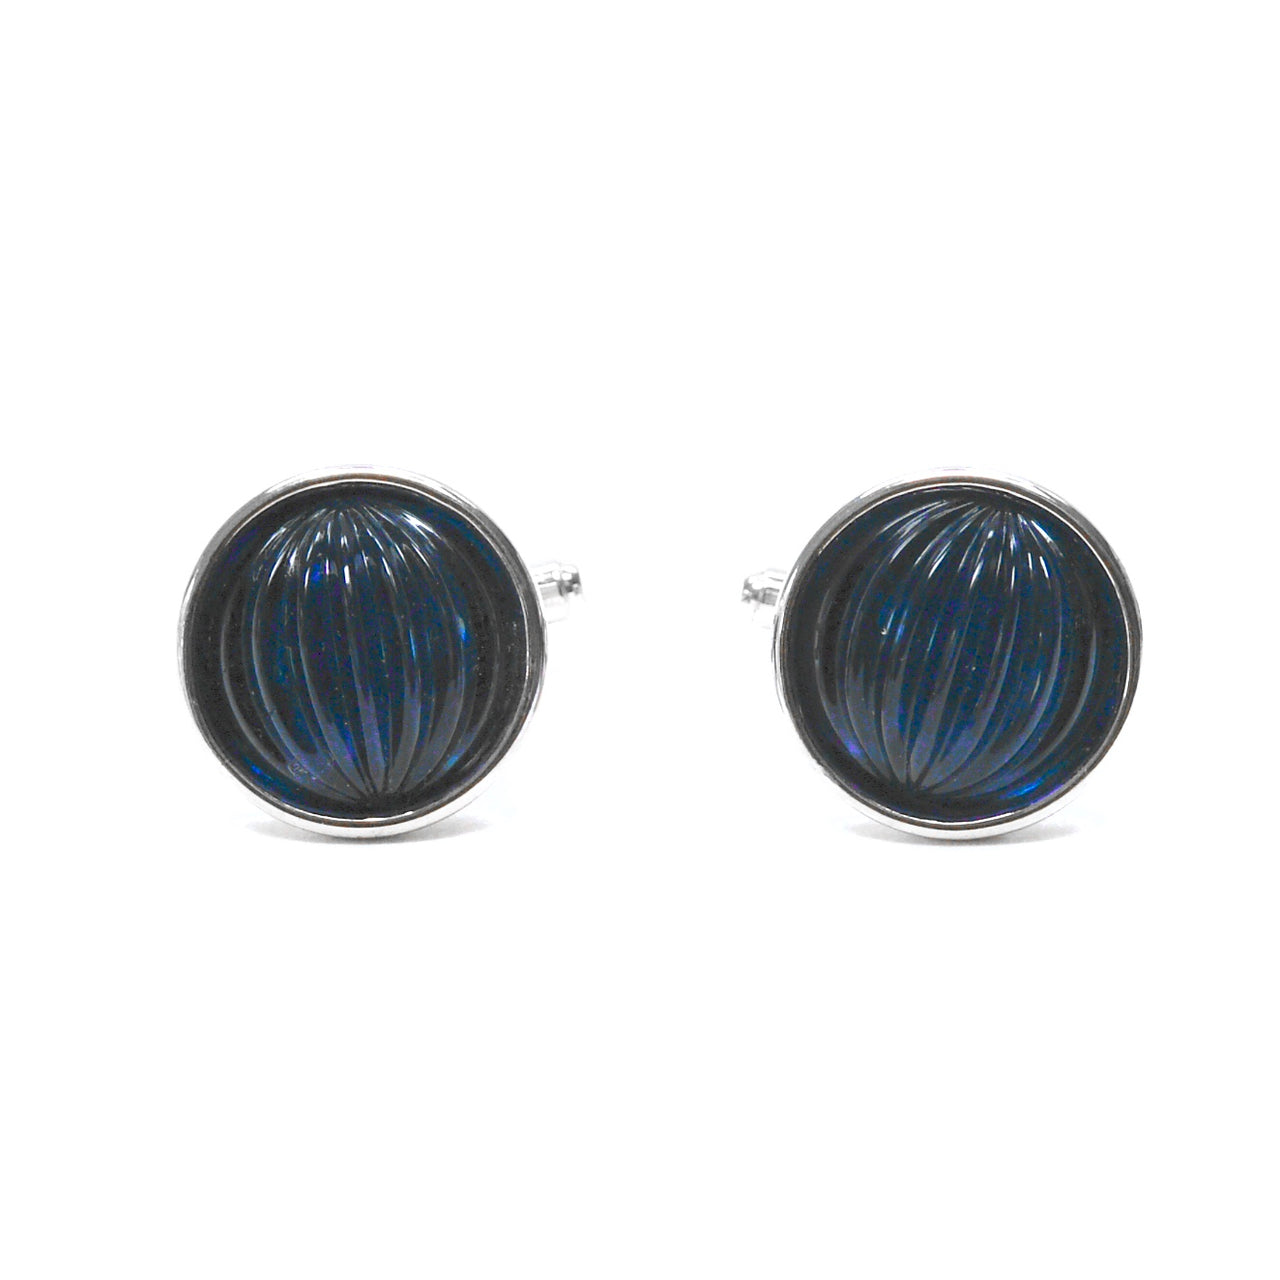 1960s Navy Glass Cufflinks